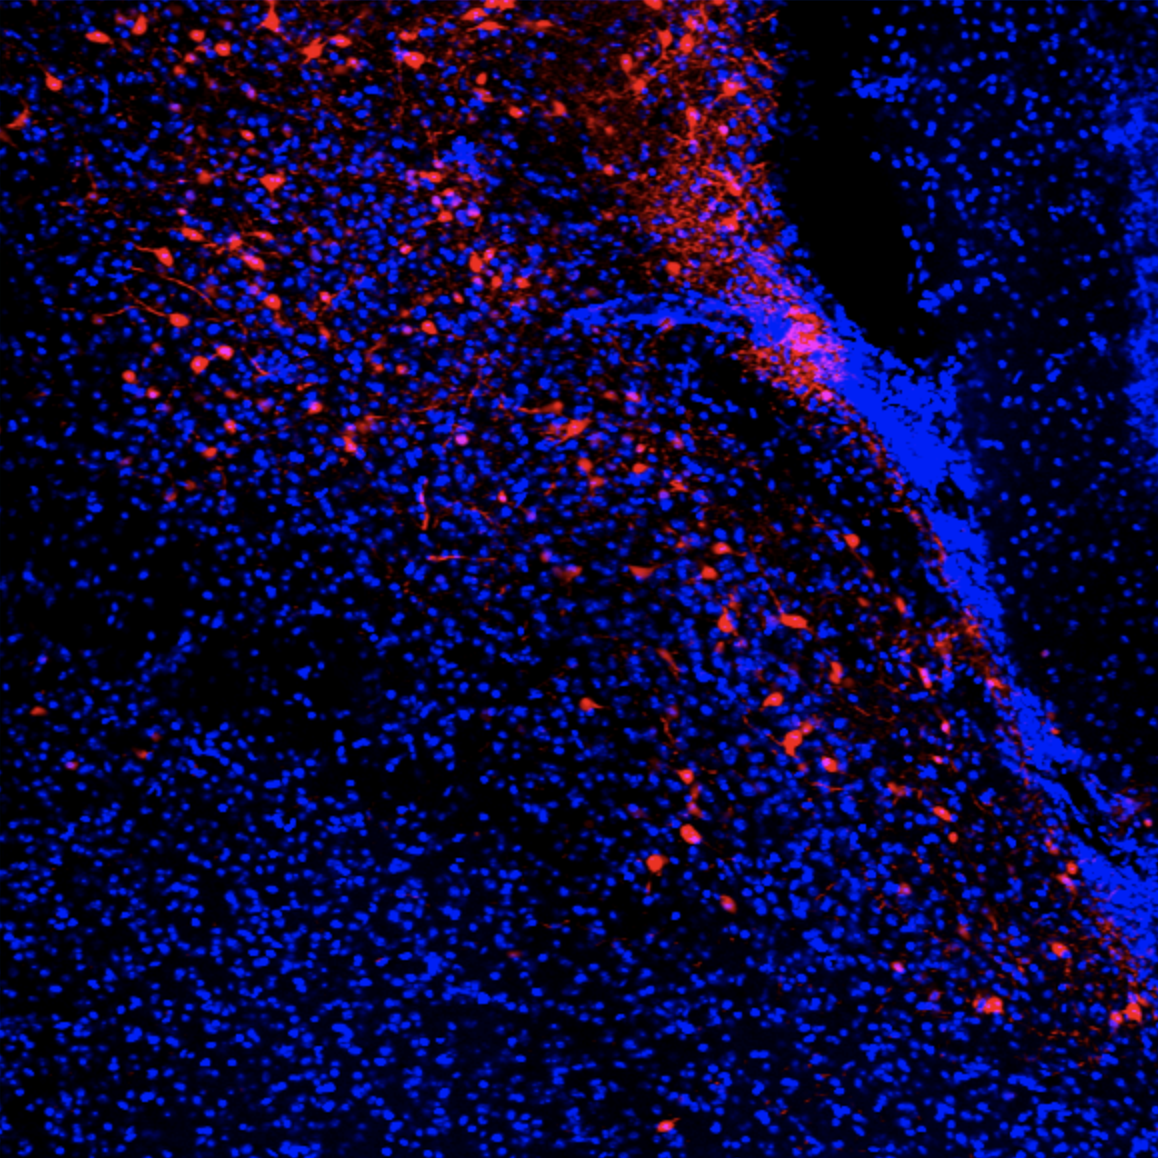 Olympus BX53 fluorescent microscope with UPlanSApo  20x, blue is DAPI, red is rabbit-RFP enhanced mCherry with AlexaFluor 555. Primary antibody: rockland rabbit anti-RFP 1:1000 Secondary antibody: alexafluor 555